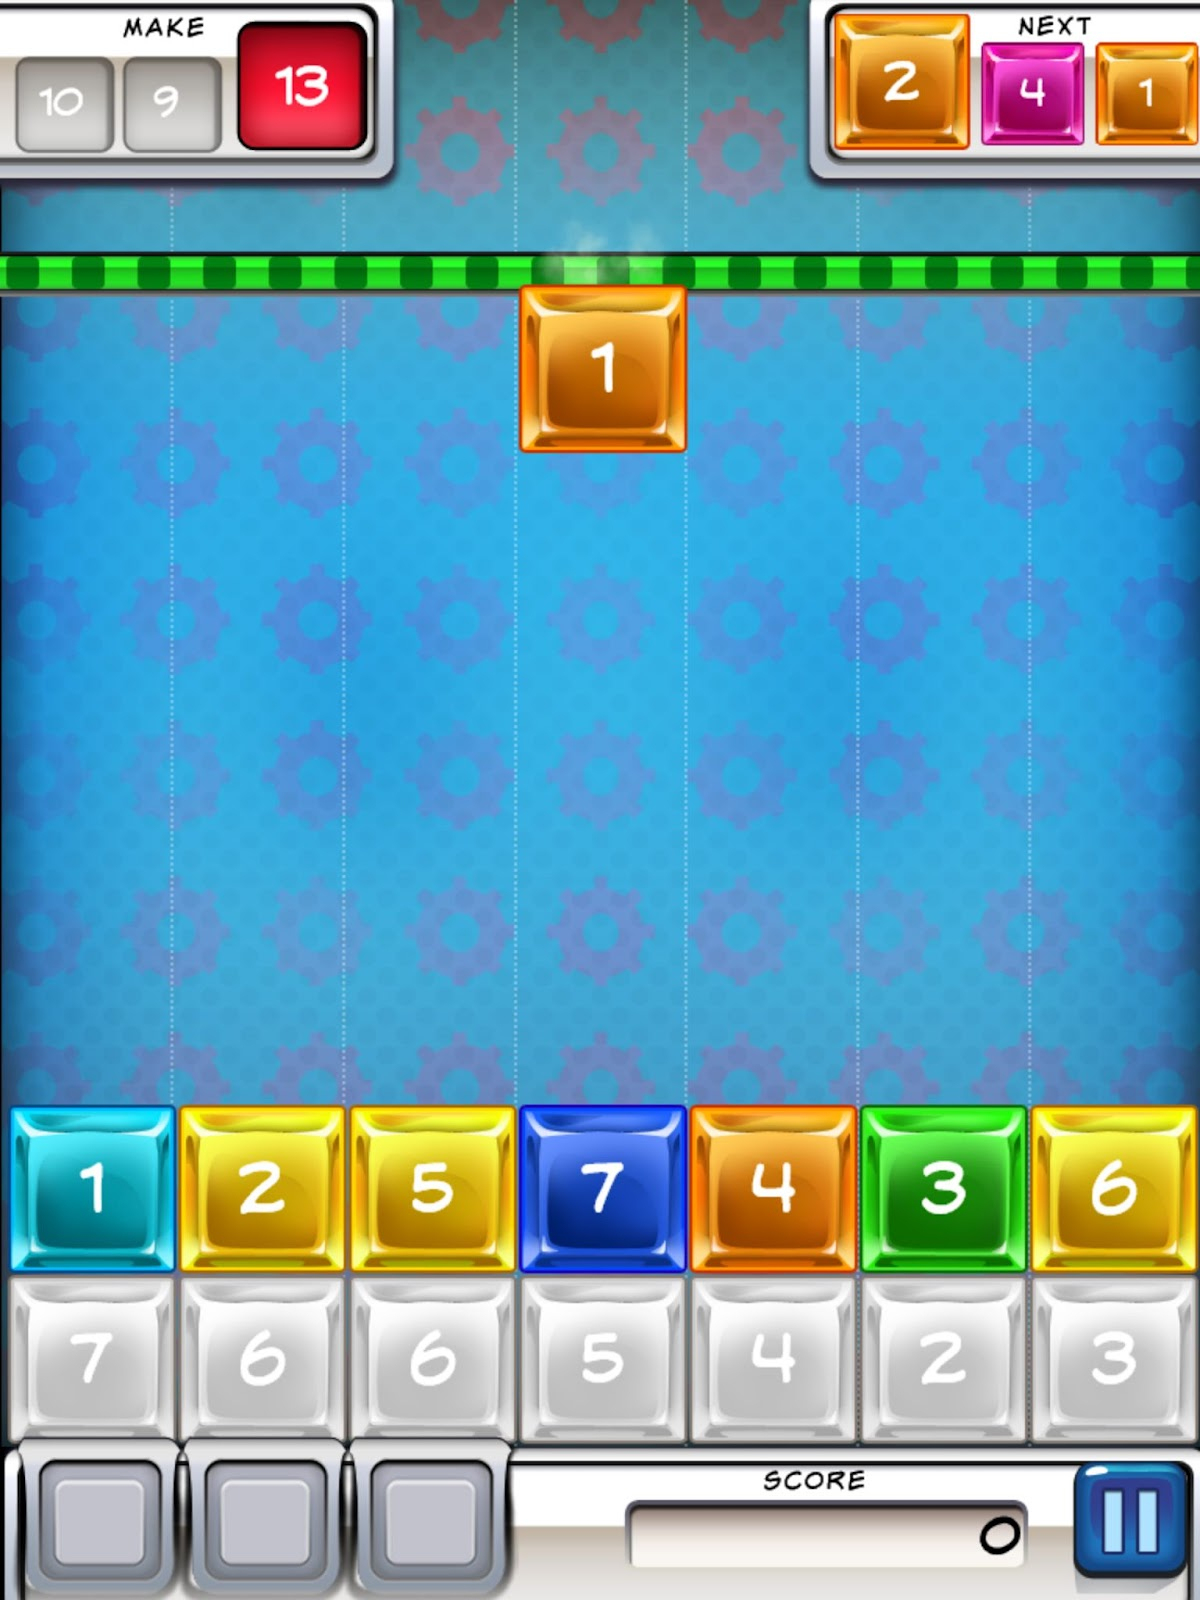 Iphone Reviews 2.0: Koozac Review à Puzzle Gratuit Facile